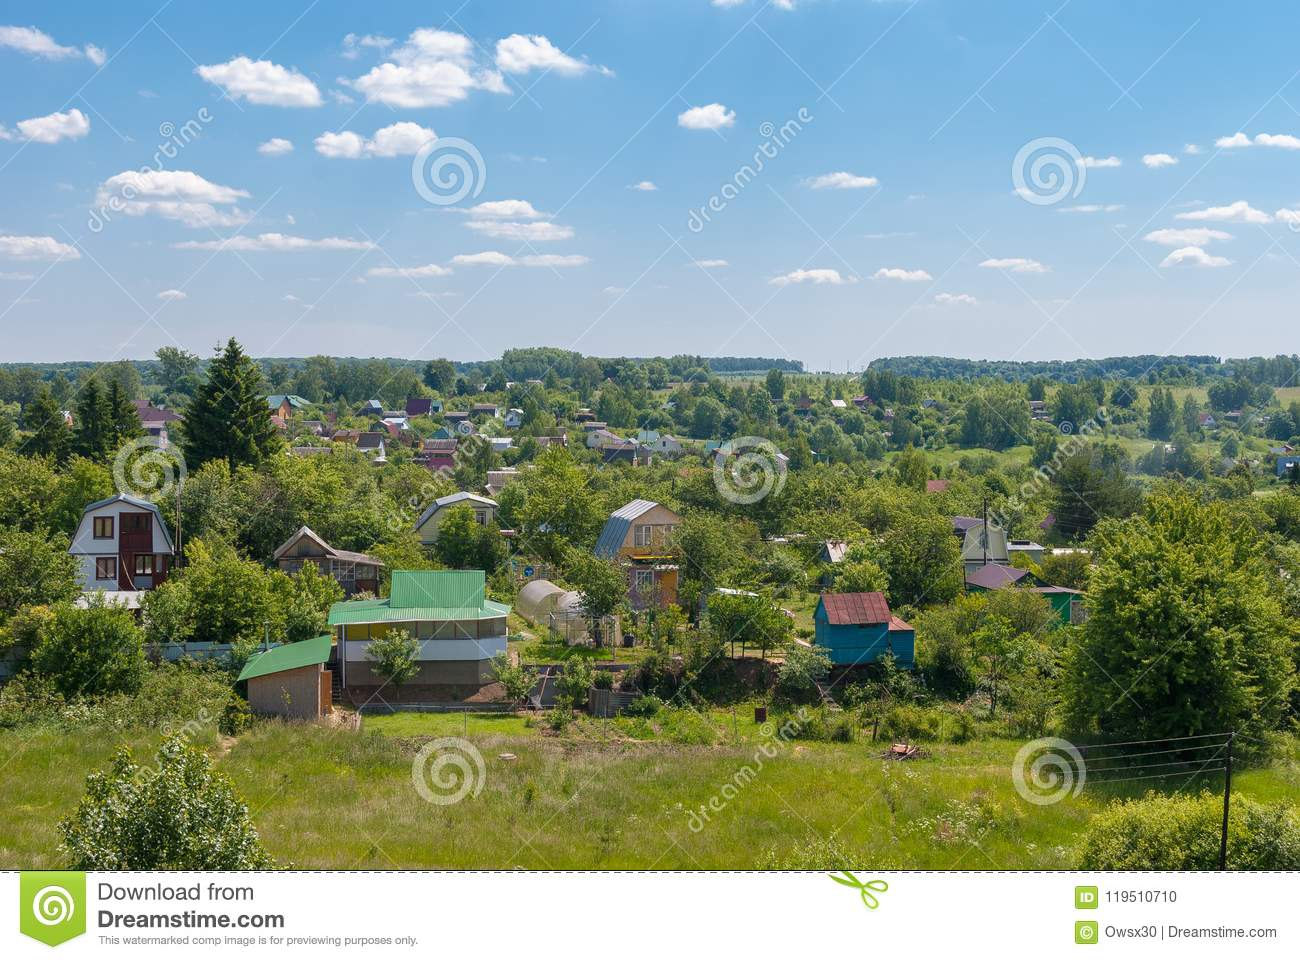 Sights of Tula region with a description 39